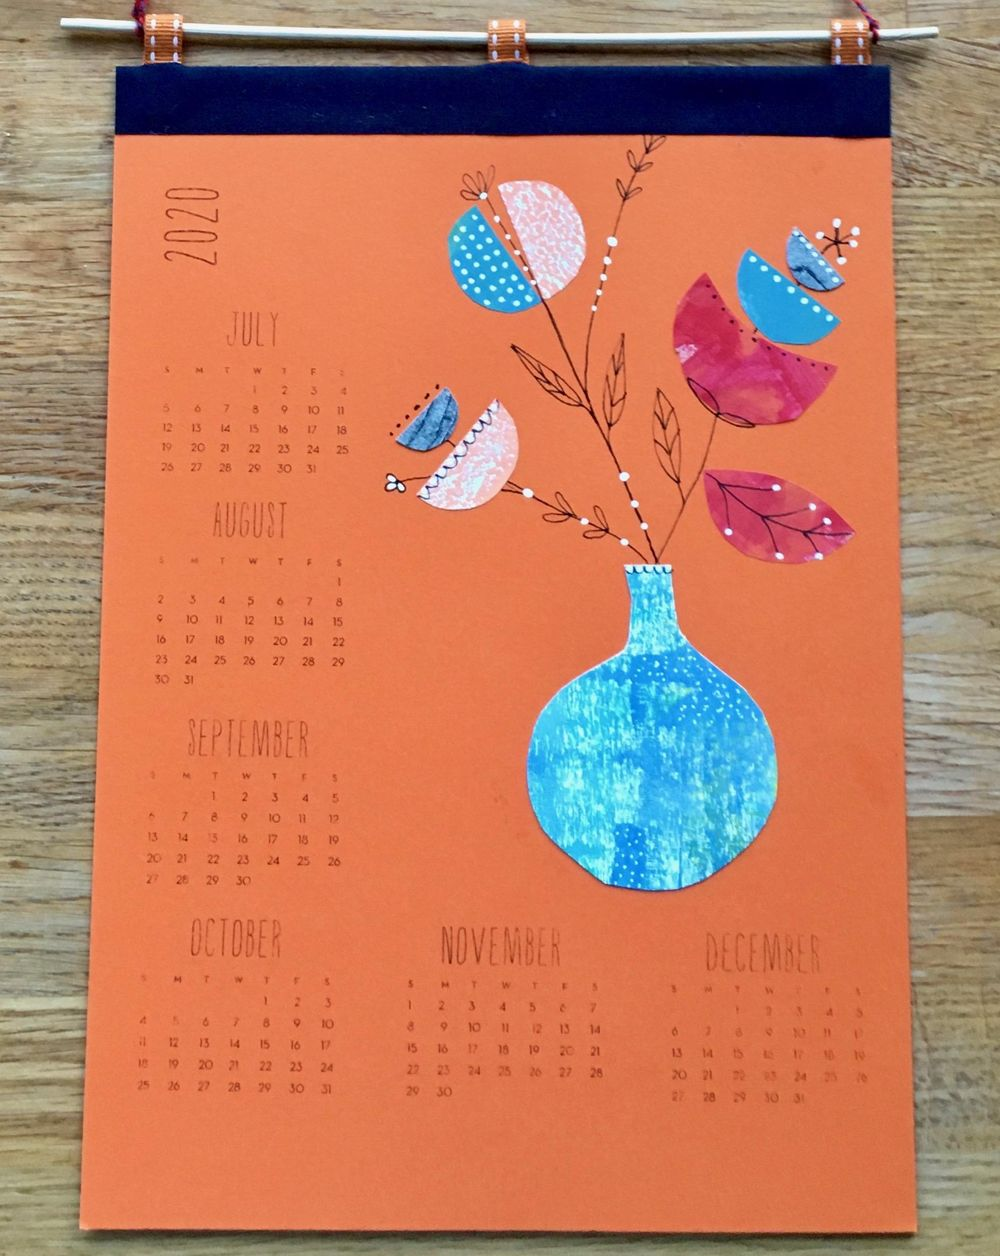 2020 calendar - another lovely, fun project from Lucie - image 1 - student project